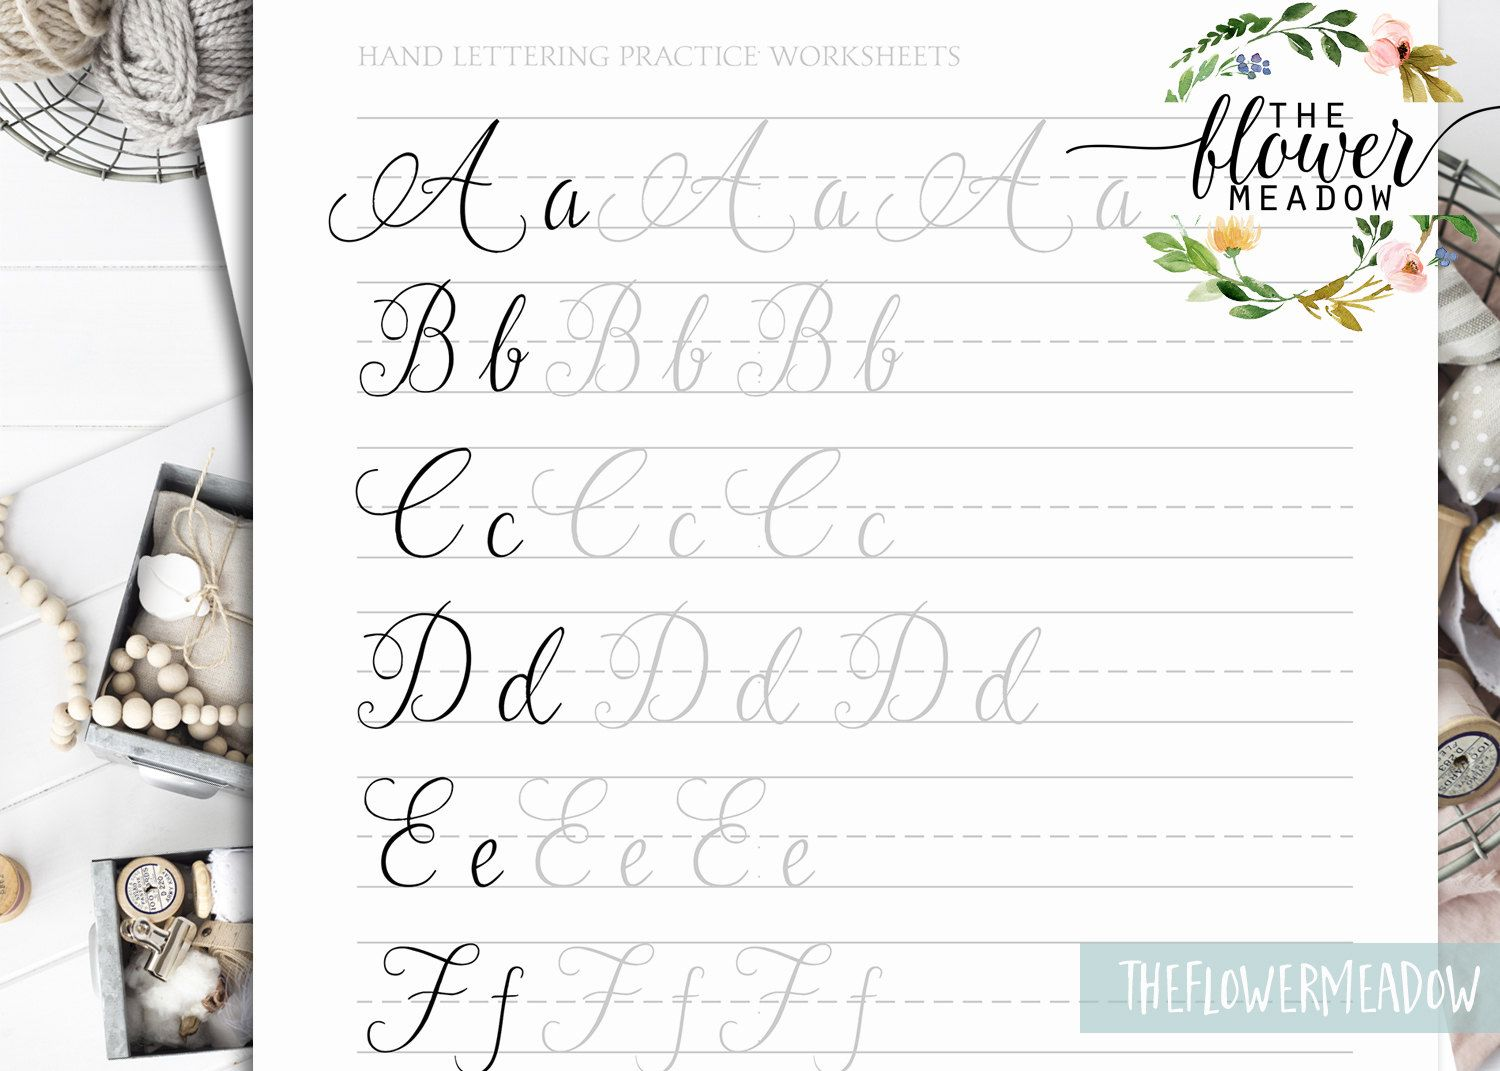 Calligraphy Tutorial Learn Hand Lettering Guide Modern Worksheets Practice Wedding Brush Alphabet 07 By TheFlowerMeadow